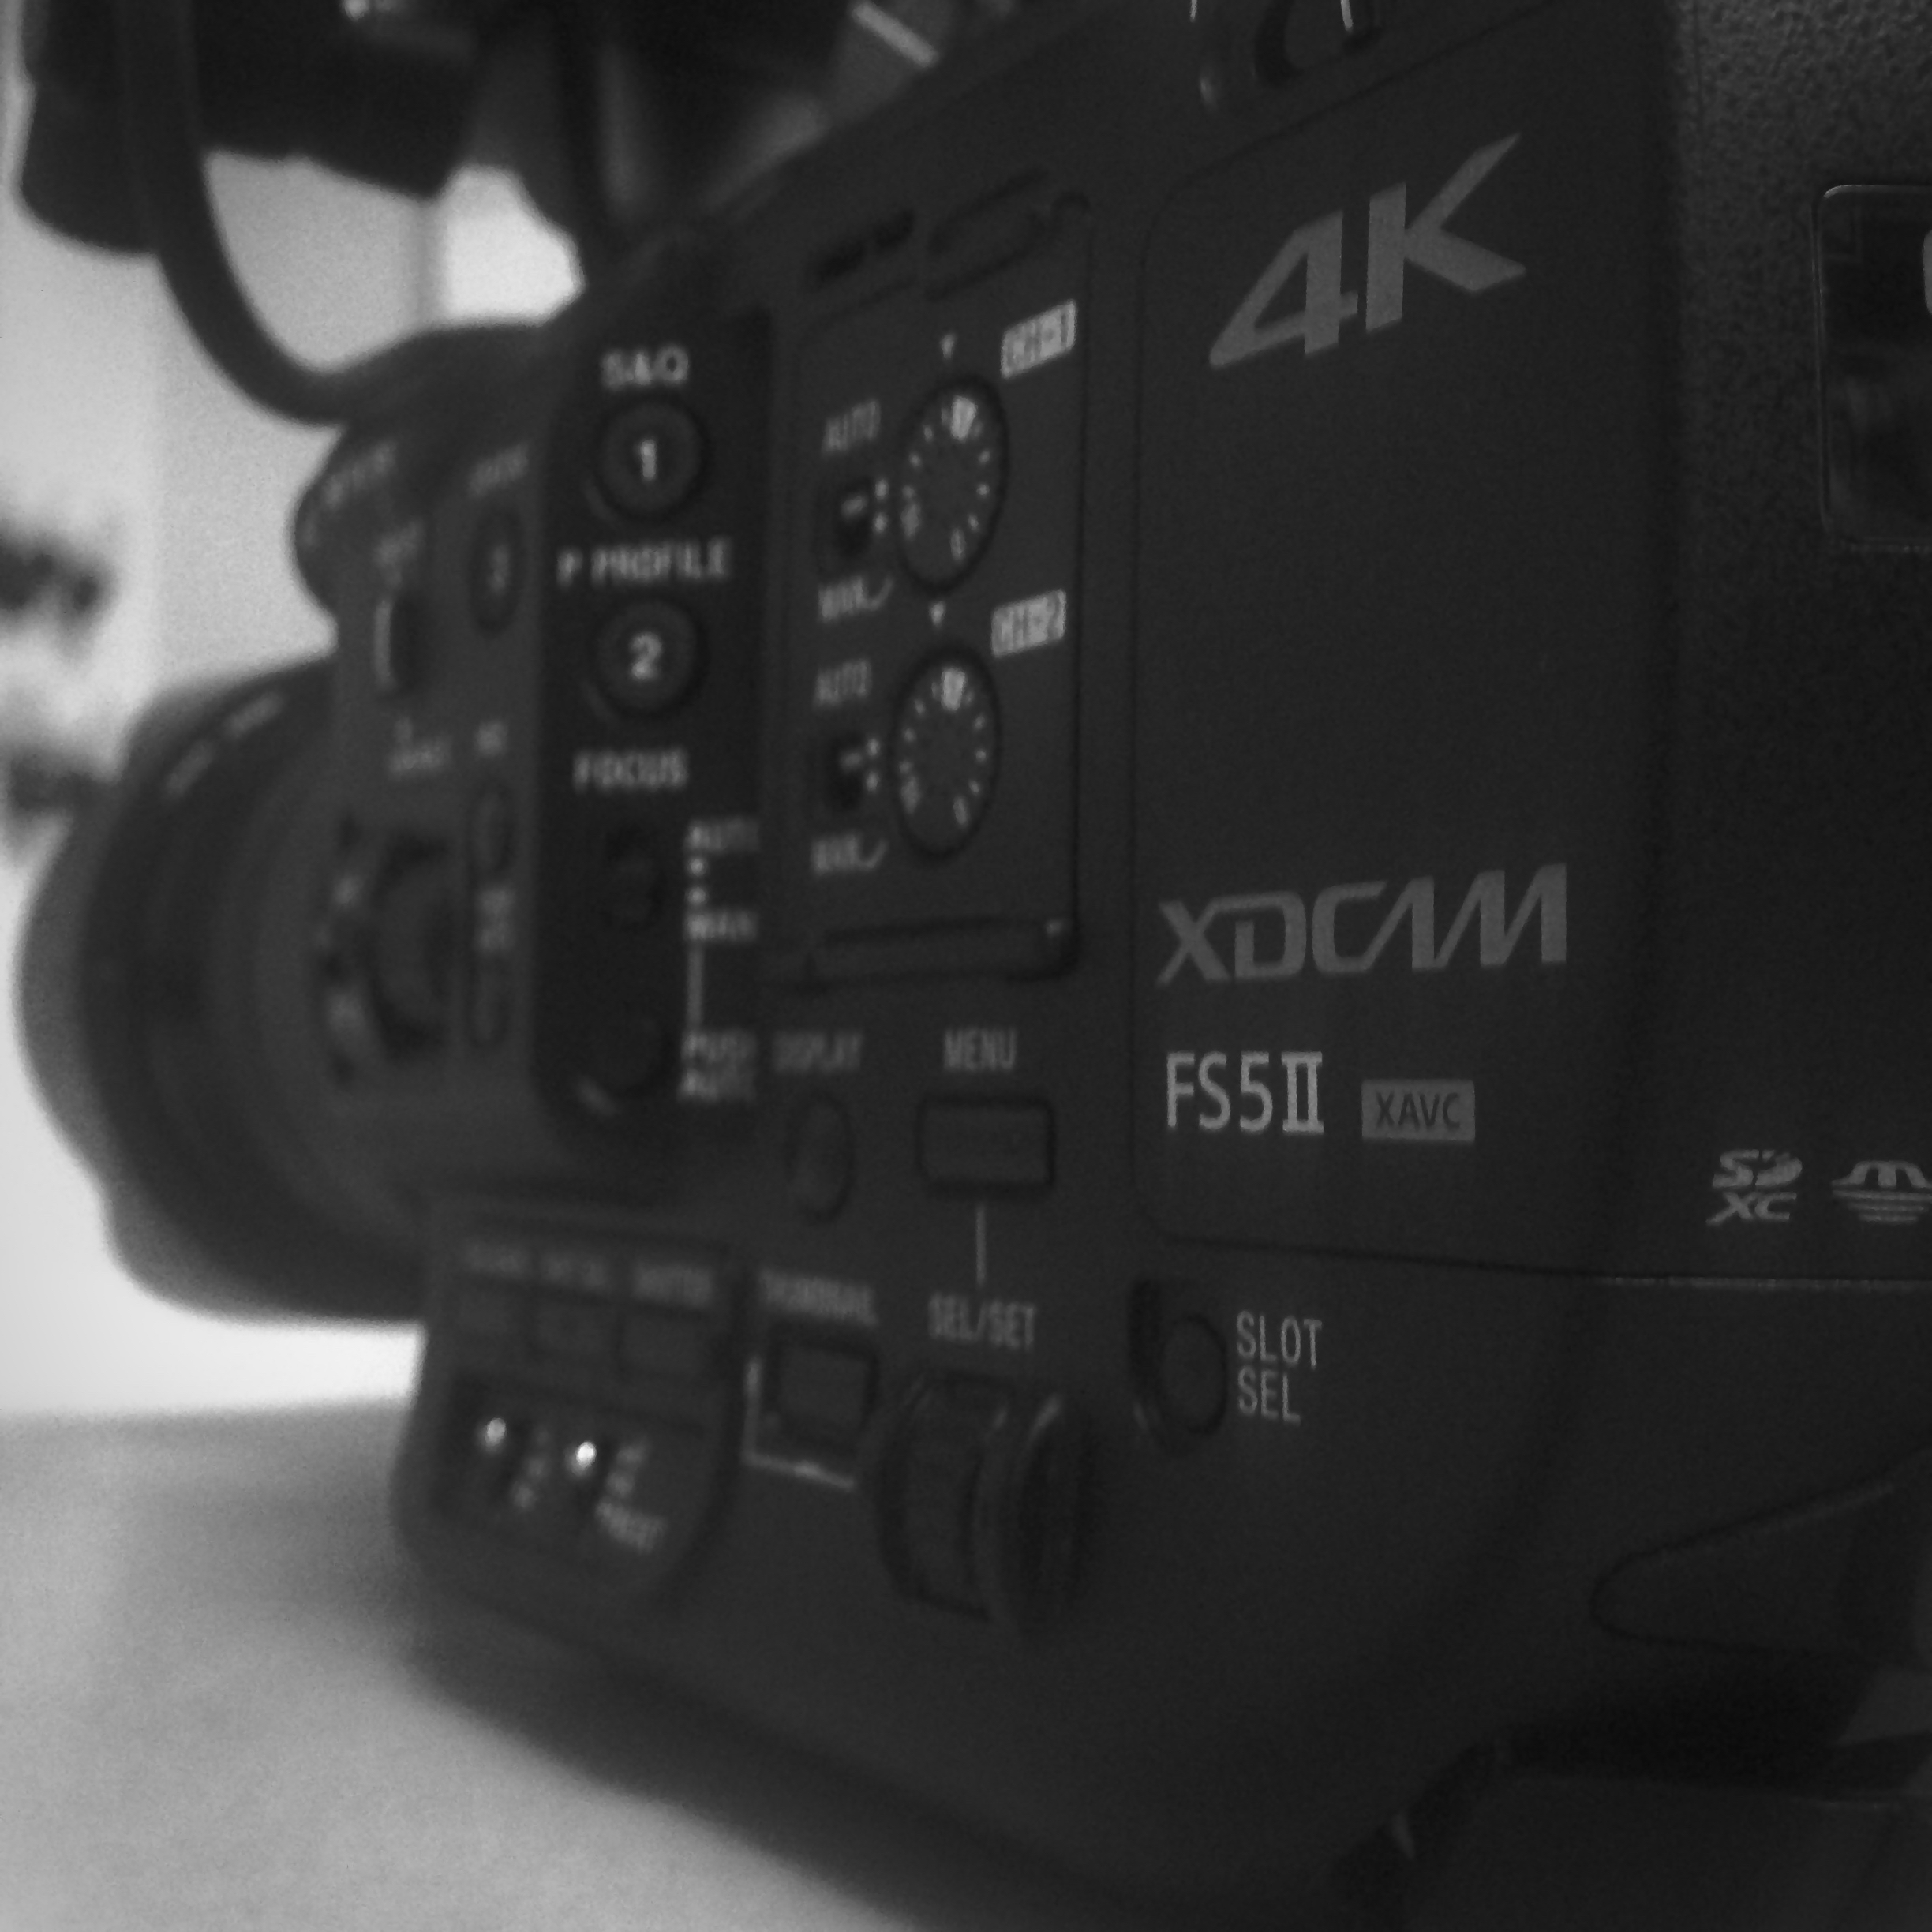 Sony FS5 Mark 2 Camera Review: Looking At The New Color